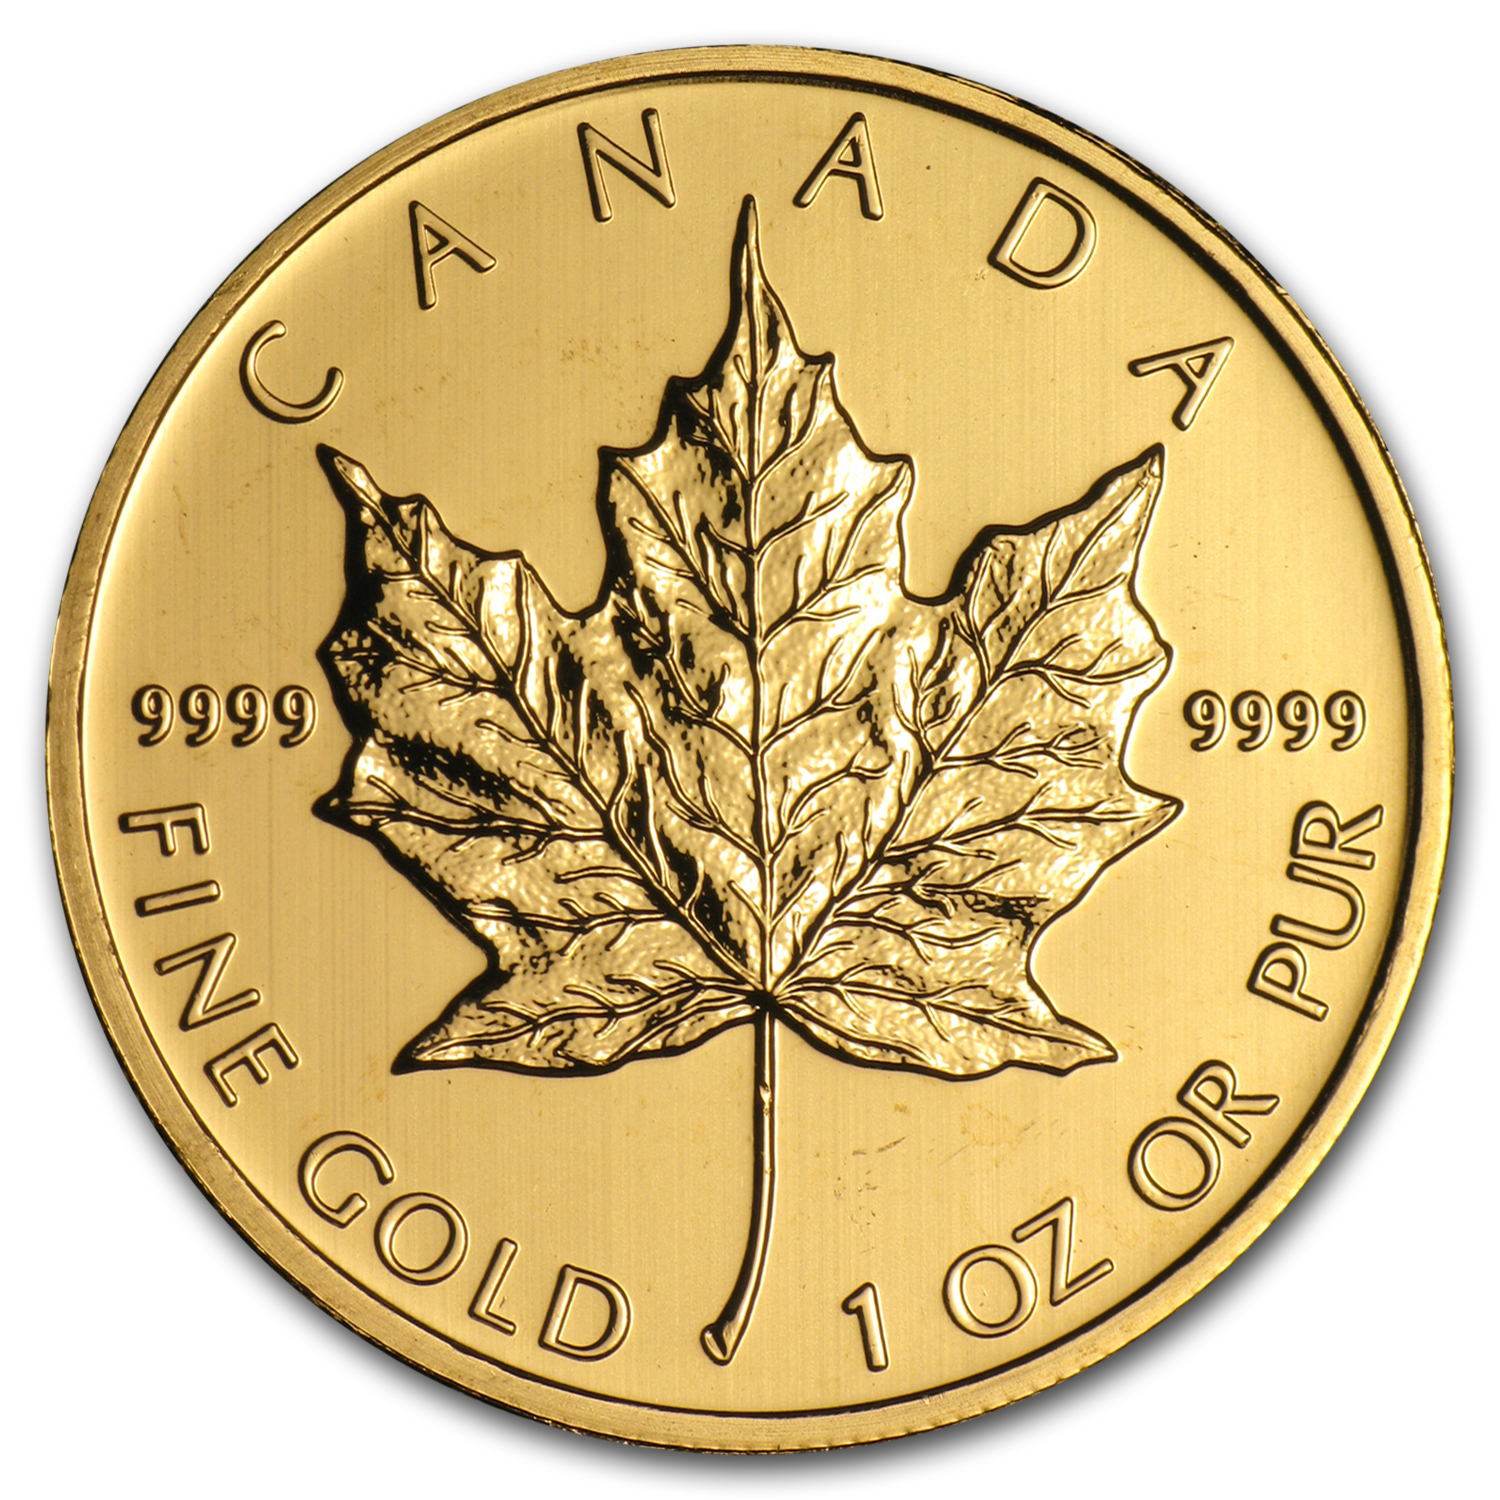 2012 Canada 1 oz Gold Maple Leaf BU